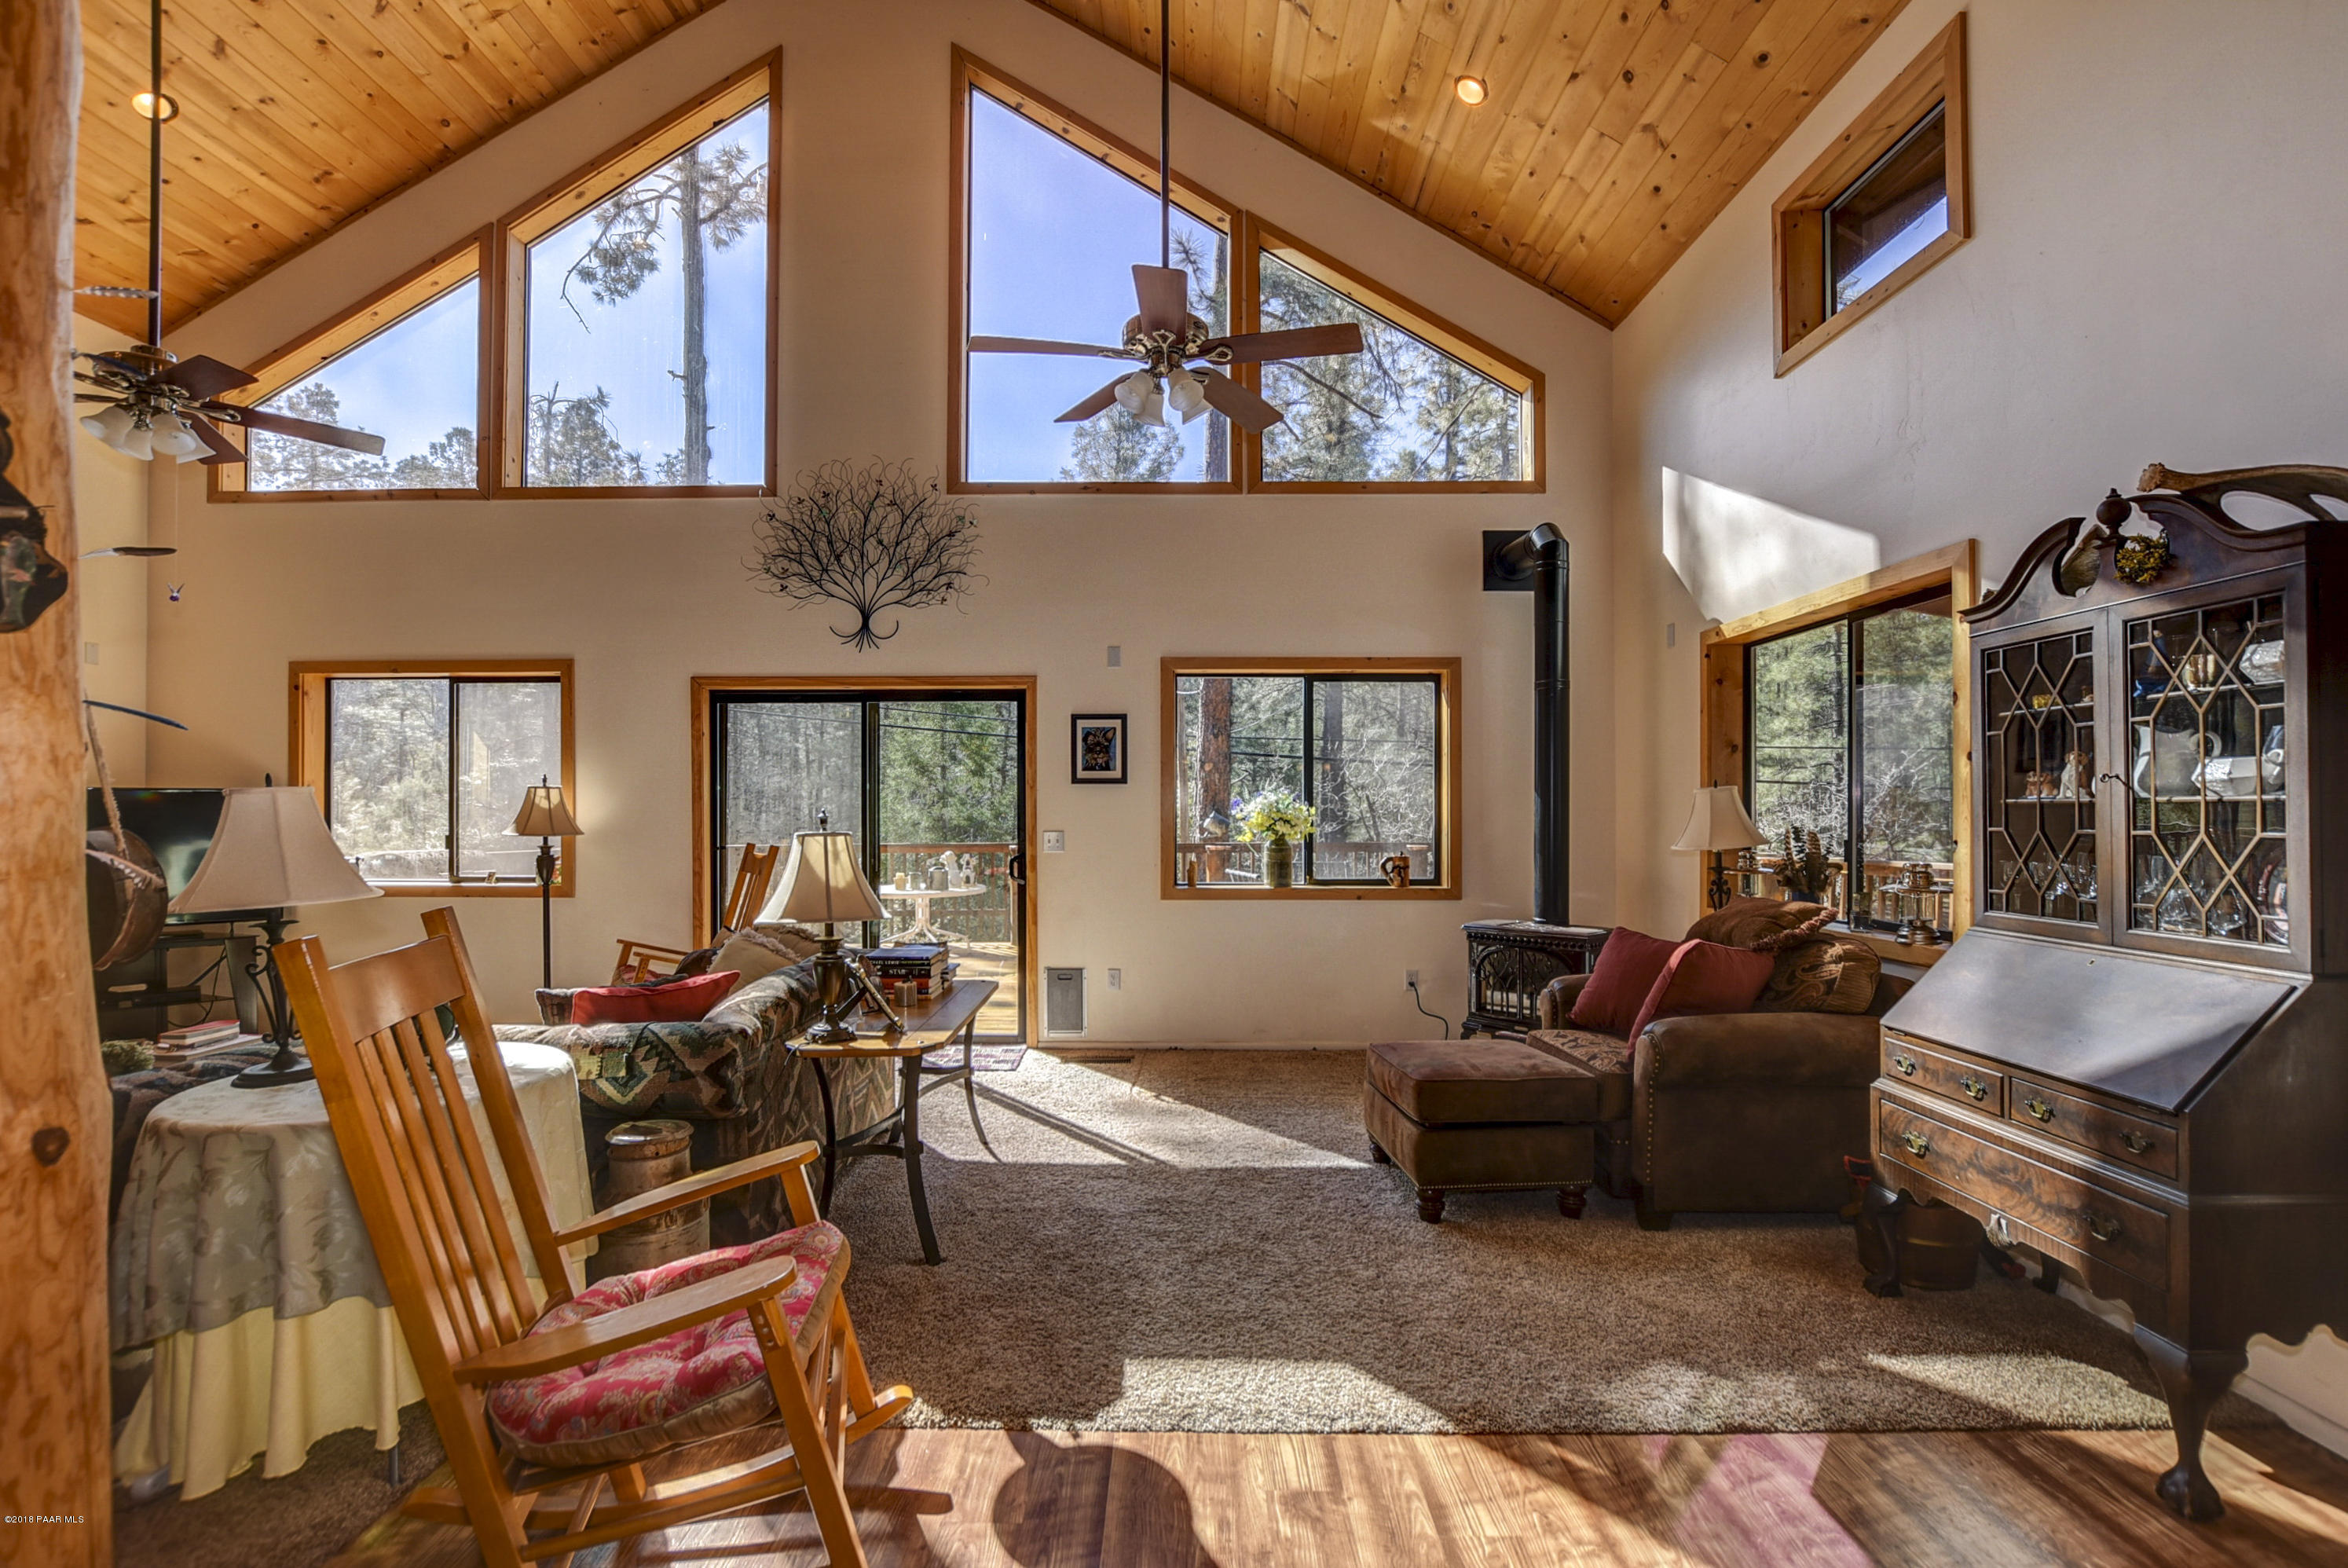 4400 E Pine Mountain Road Prescott, AZ 86303 - MLS #: 1011183